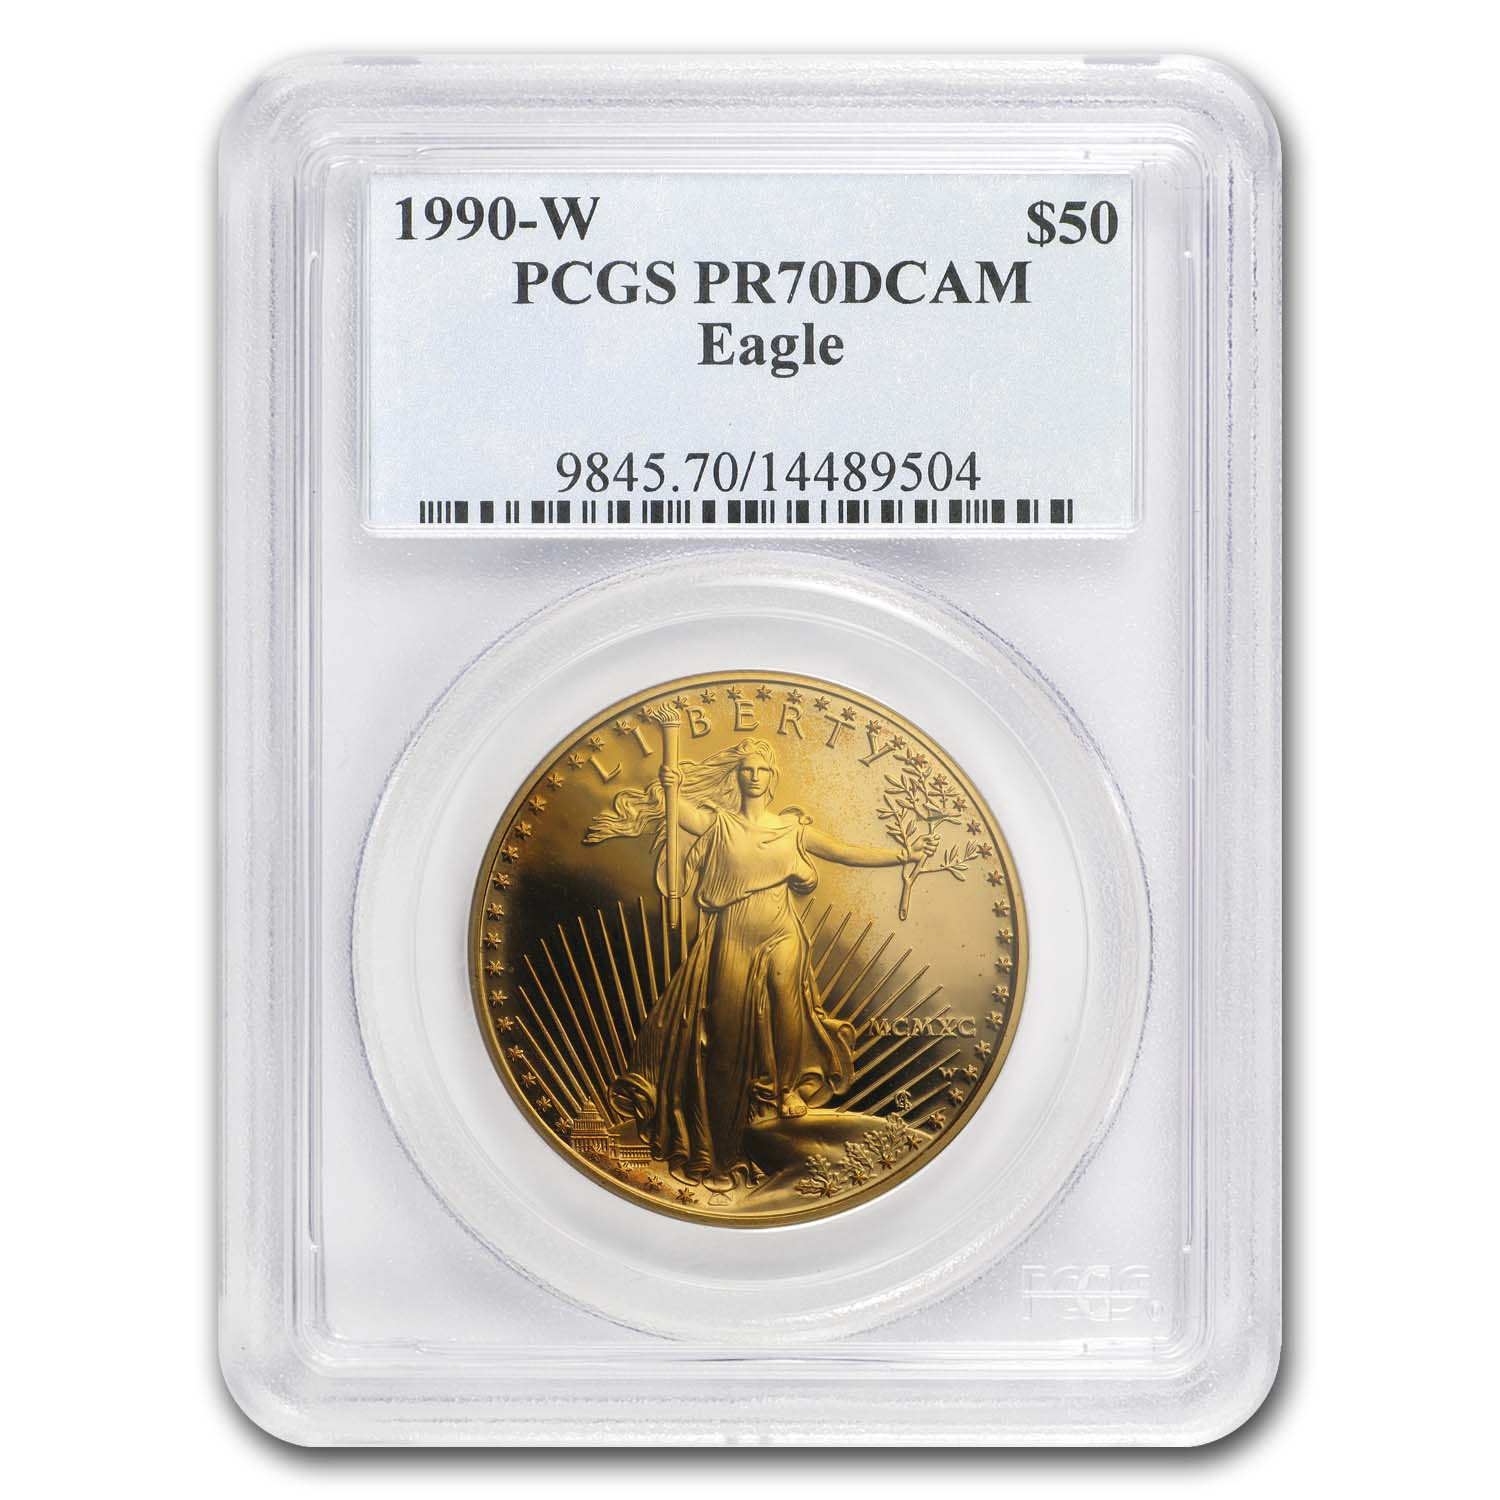 1990-W 1 oz Proof Gold American Eagle PR-70 PCGS (Registry Set)